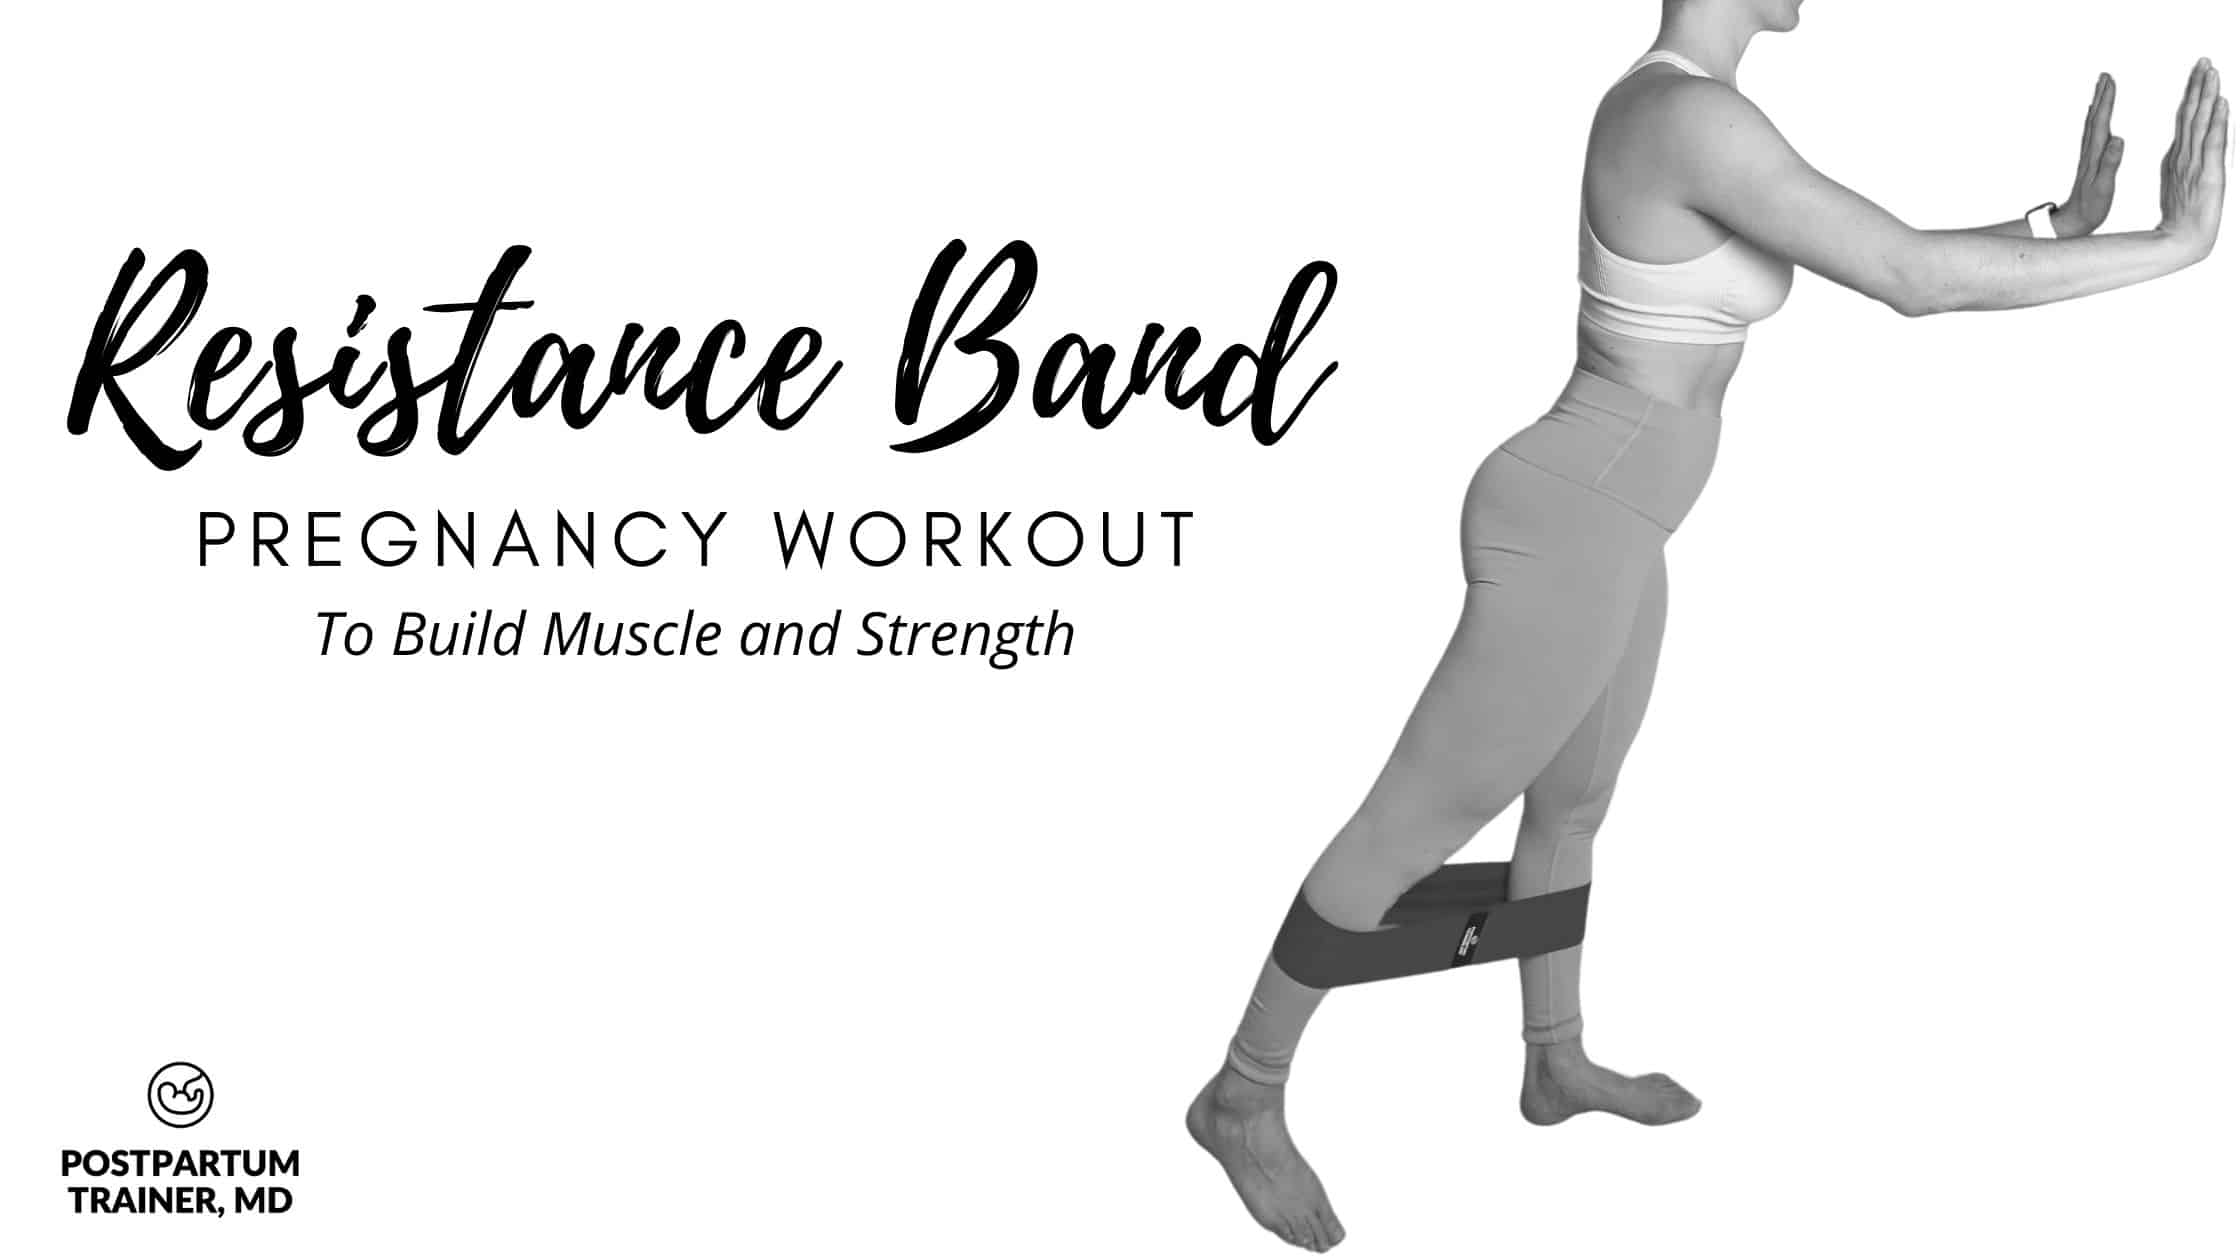 The Best Resistance Band Pregnancy Workout [To Build Muscle ...